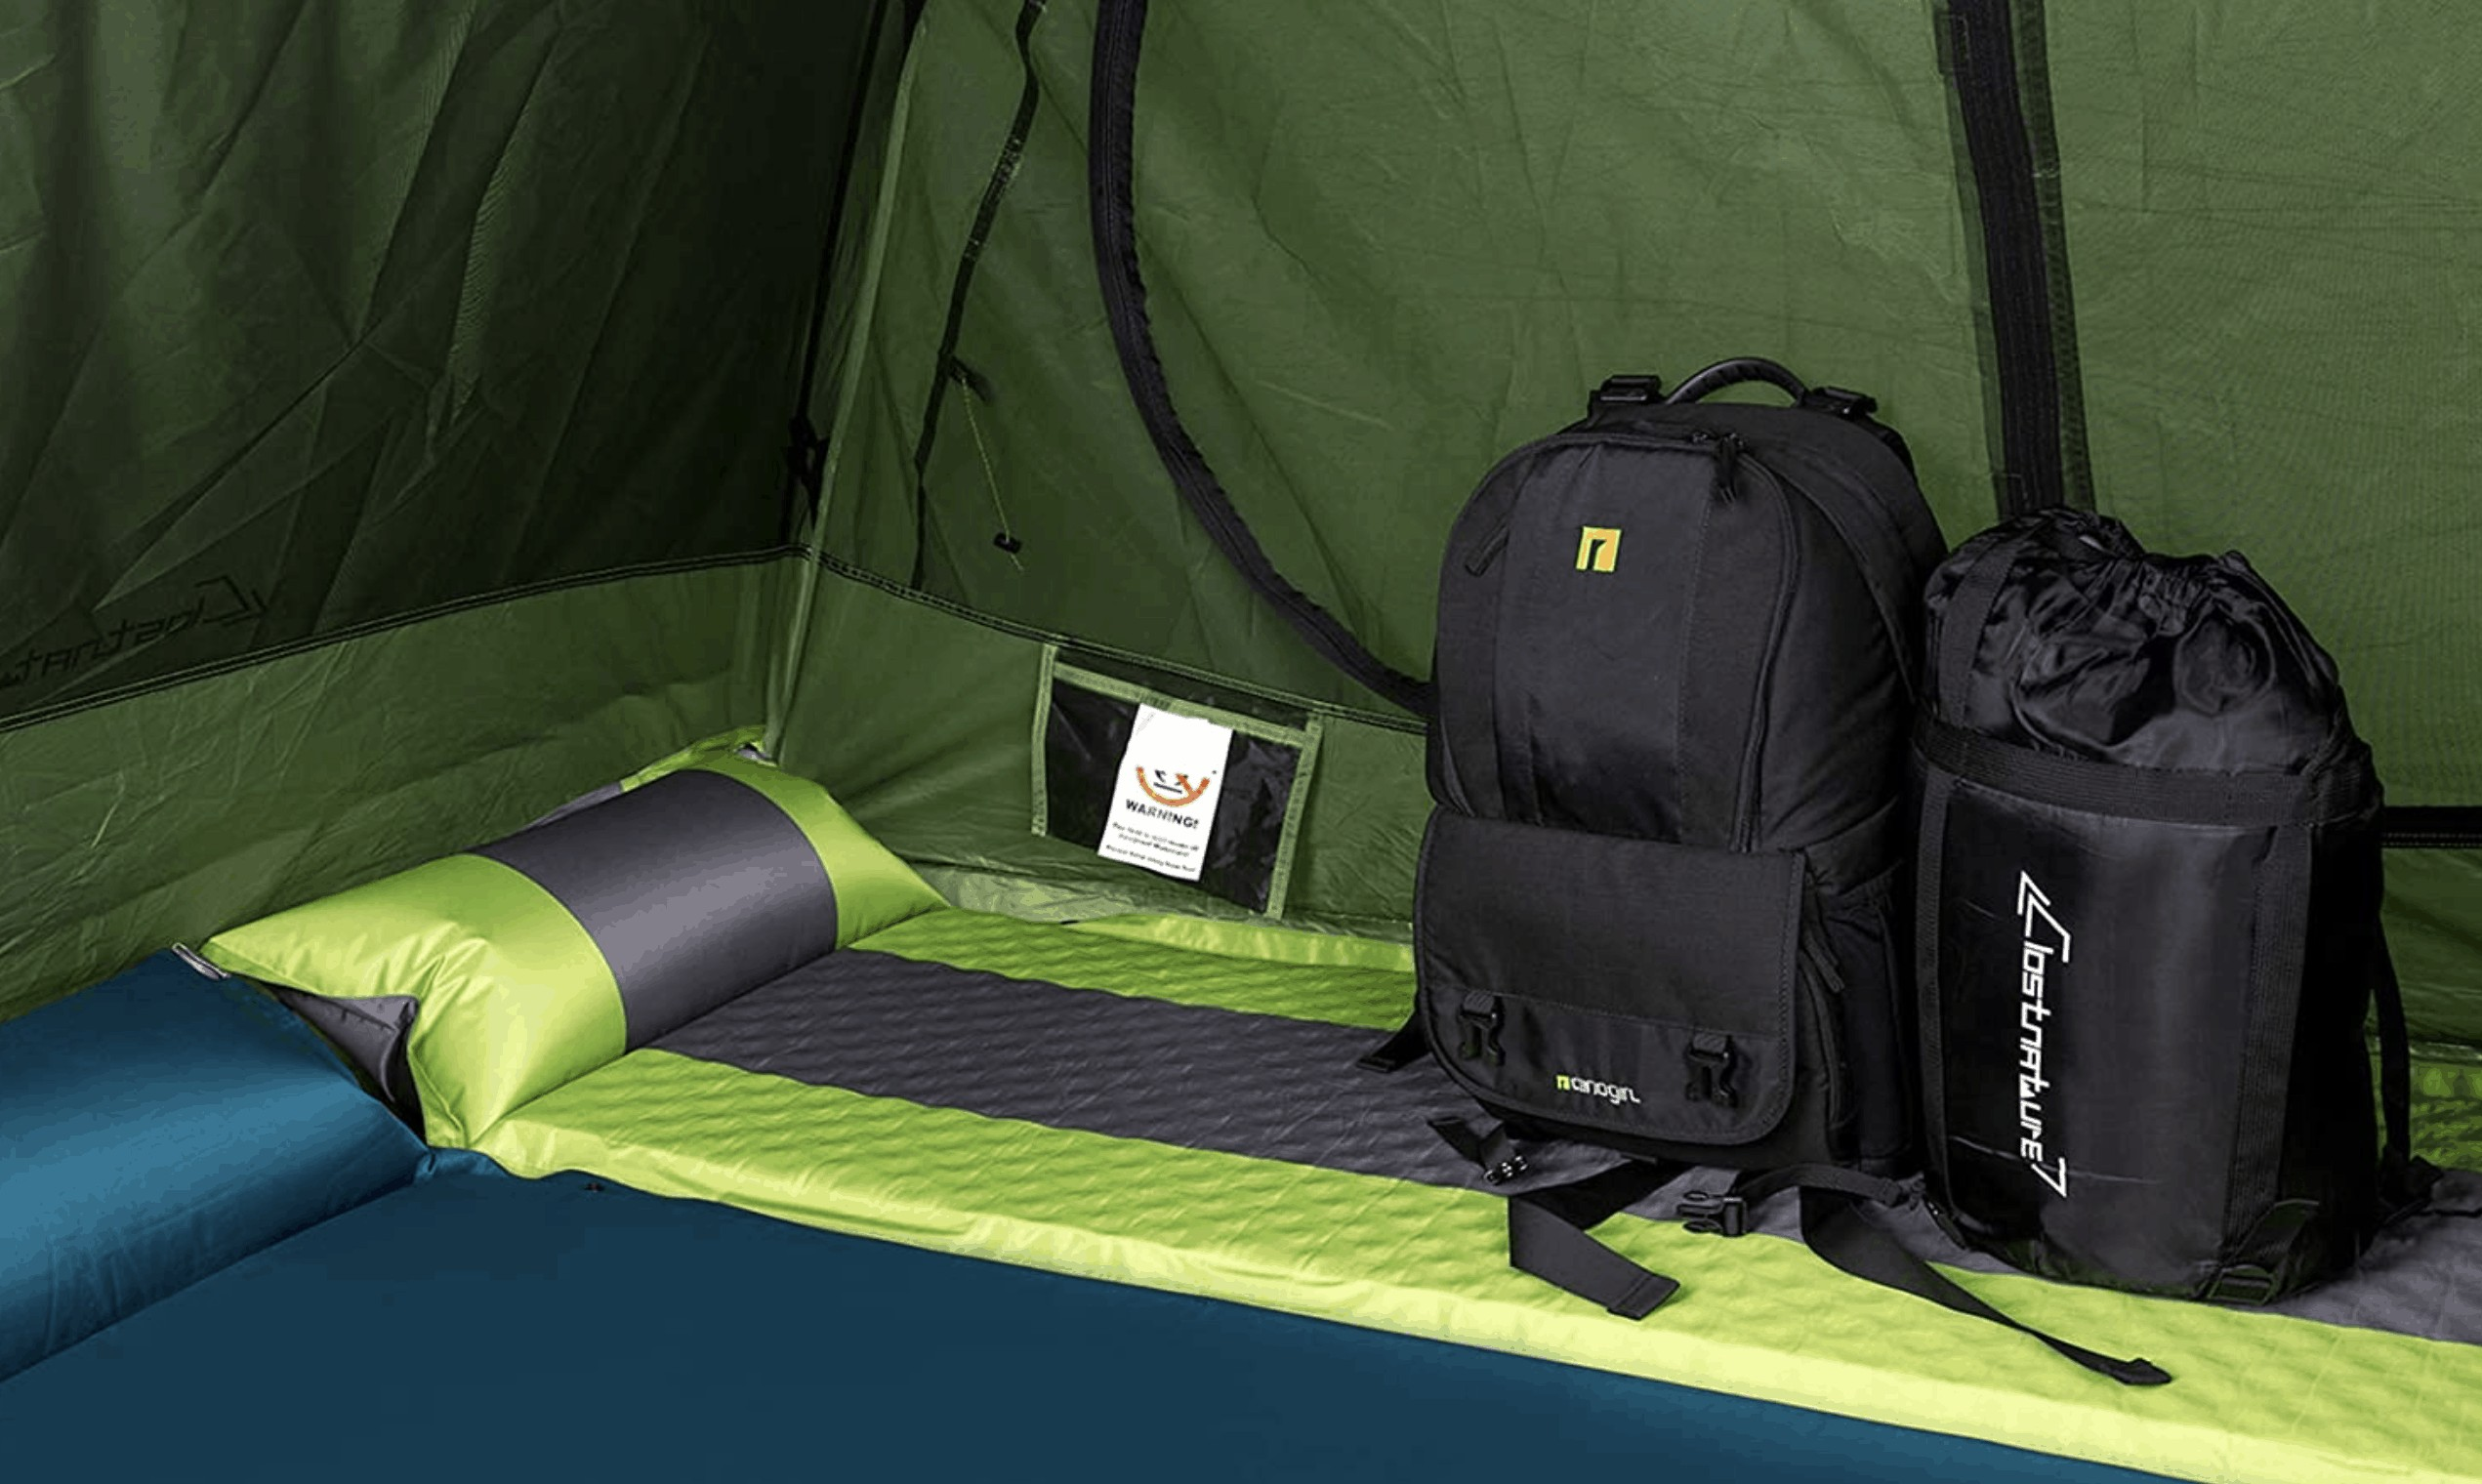 Lightweight Self-Inflating Sleeping Pads